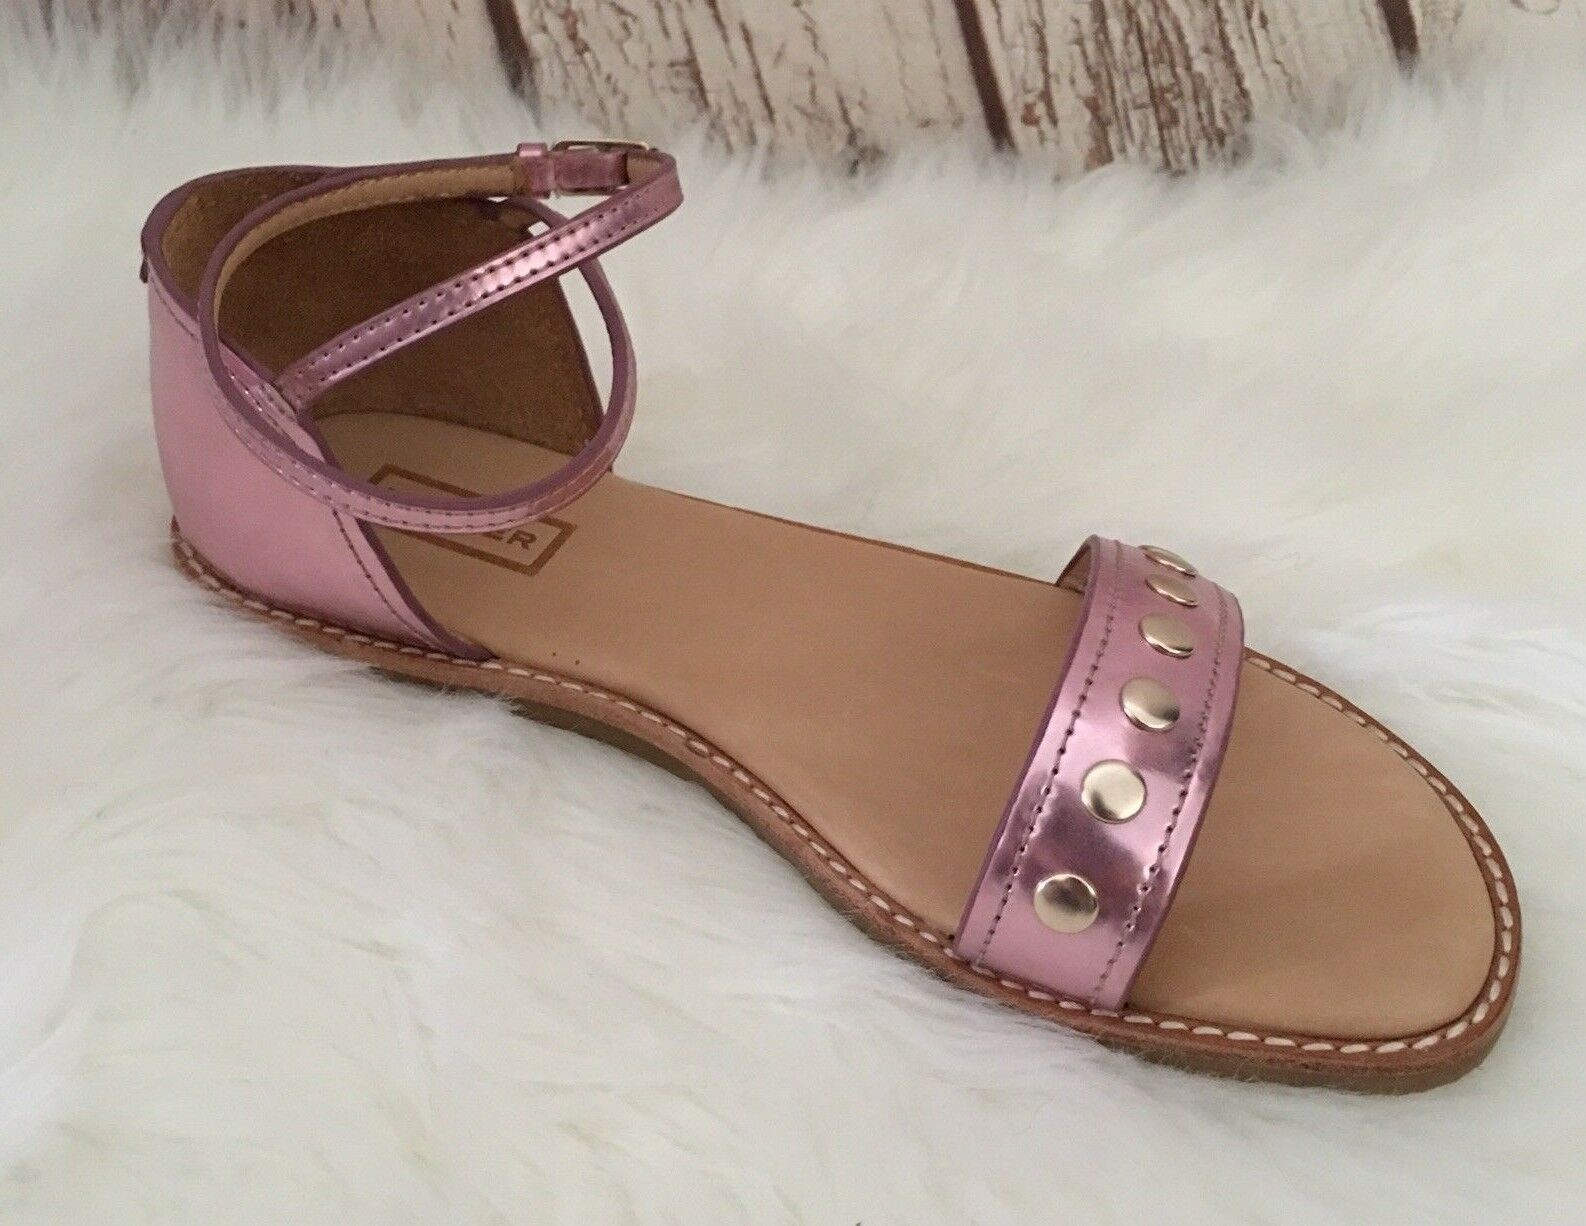 NEW Hunter Original Metallic Leder Studded Sandales SZ 9 Metallic Original Old Rose 844b1a